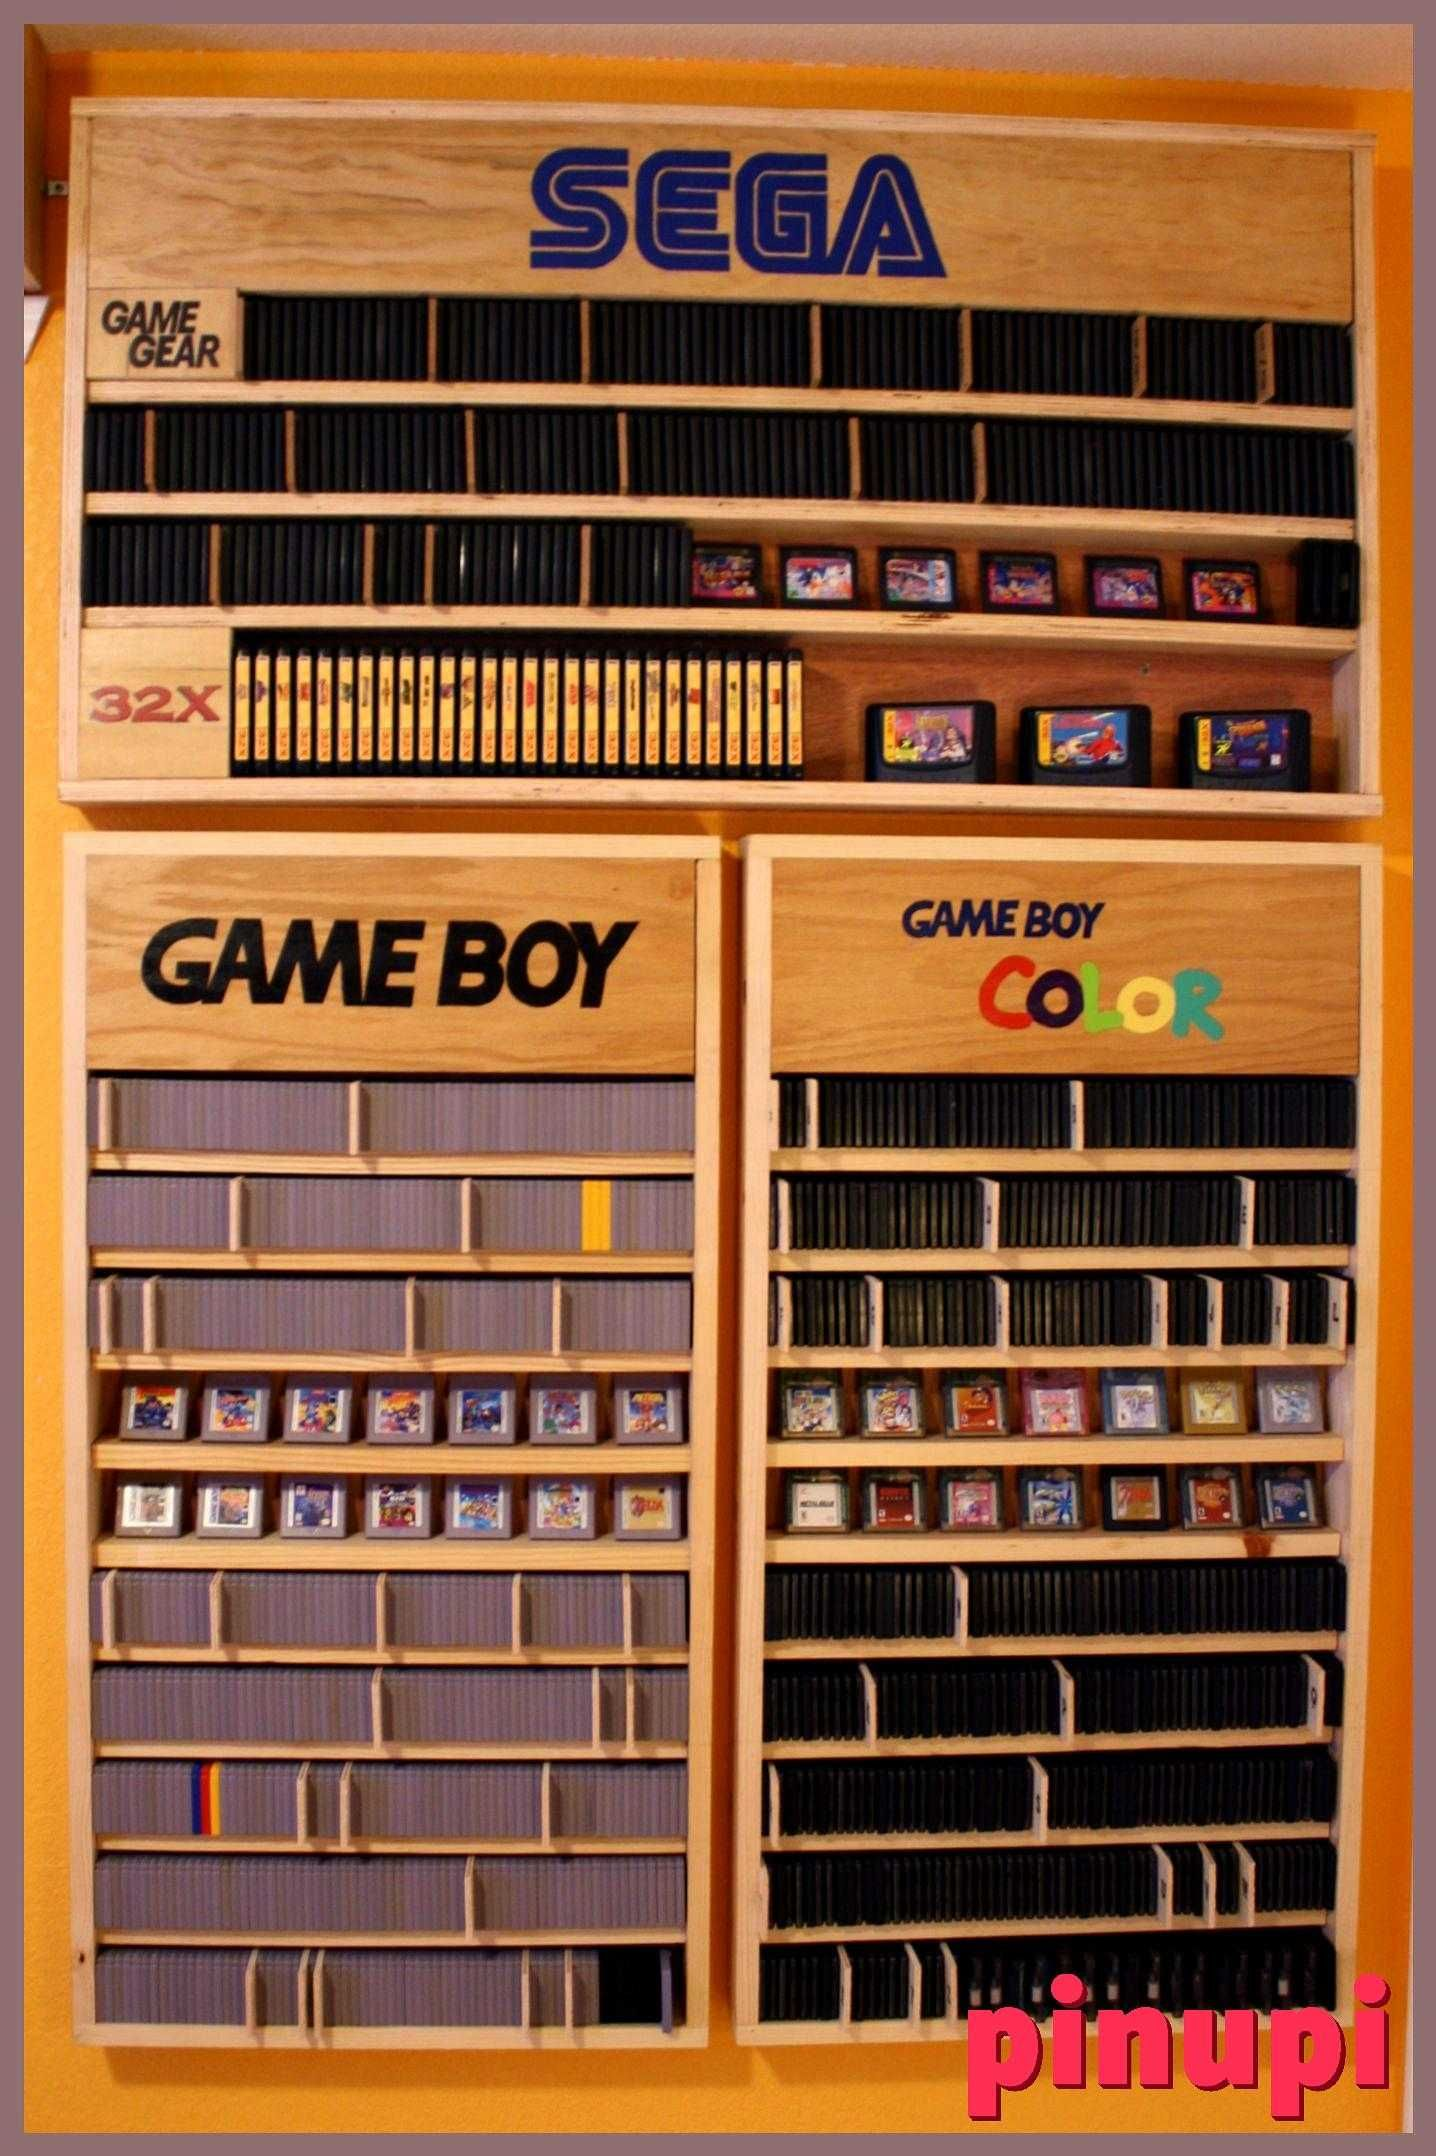 Nintendotwizer S Gameboy And Gameboy Color Sets Nintendotwizer S Gameboy And Gameboy Color Sets 10035 Views On Imgur Shelves For Video Games Would Be Cool To Have Slide In Slots Attached To Outside Of Shelves For Controllers Like For Guns On Arcade Games